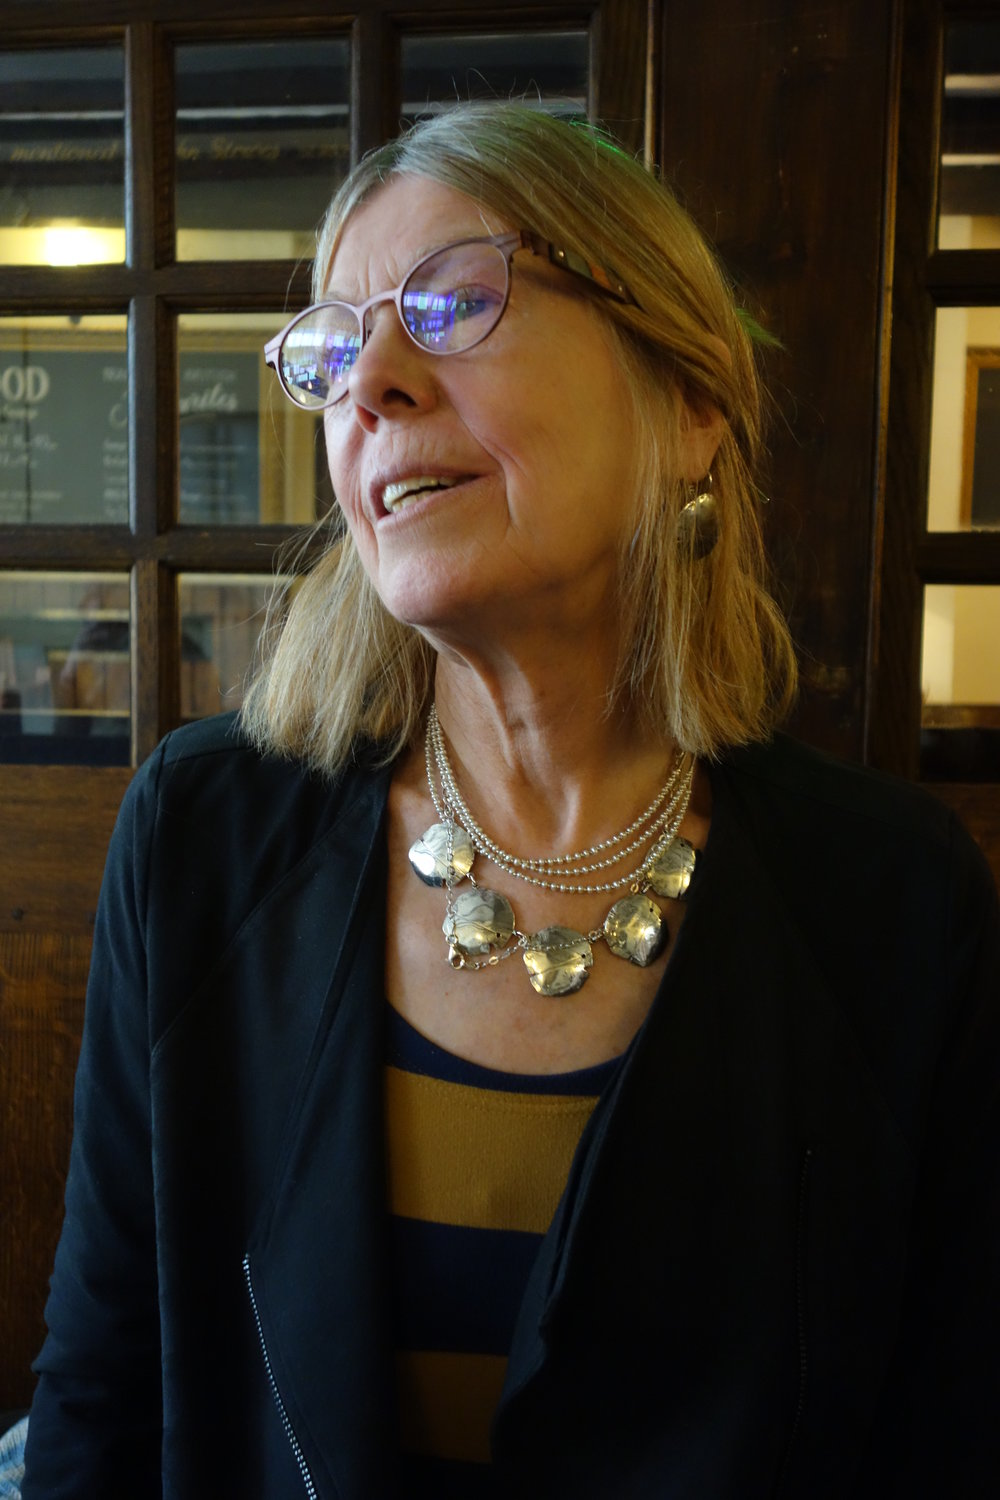 "Wendy French is a poet, whose latest collection of poems is ""Thinks Itself A Hawk"" (Hippocrates, 2016). Her collaboration with Jane Kirwan resulted in the book ""Born in the NHS"" (Hippocrates, 2013). She won the Hippocrates Poetry and Medicine prize for the NHS section in 2010 and was awarded second prize in 2011. She has worked for the past twenty years in healthcare settings. Her poem "" Exchange "" appears in the Spring 2017 Intima."